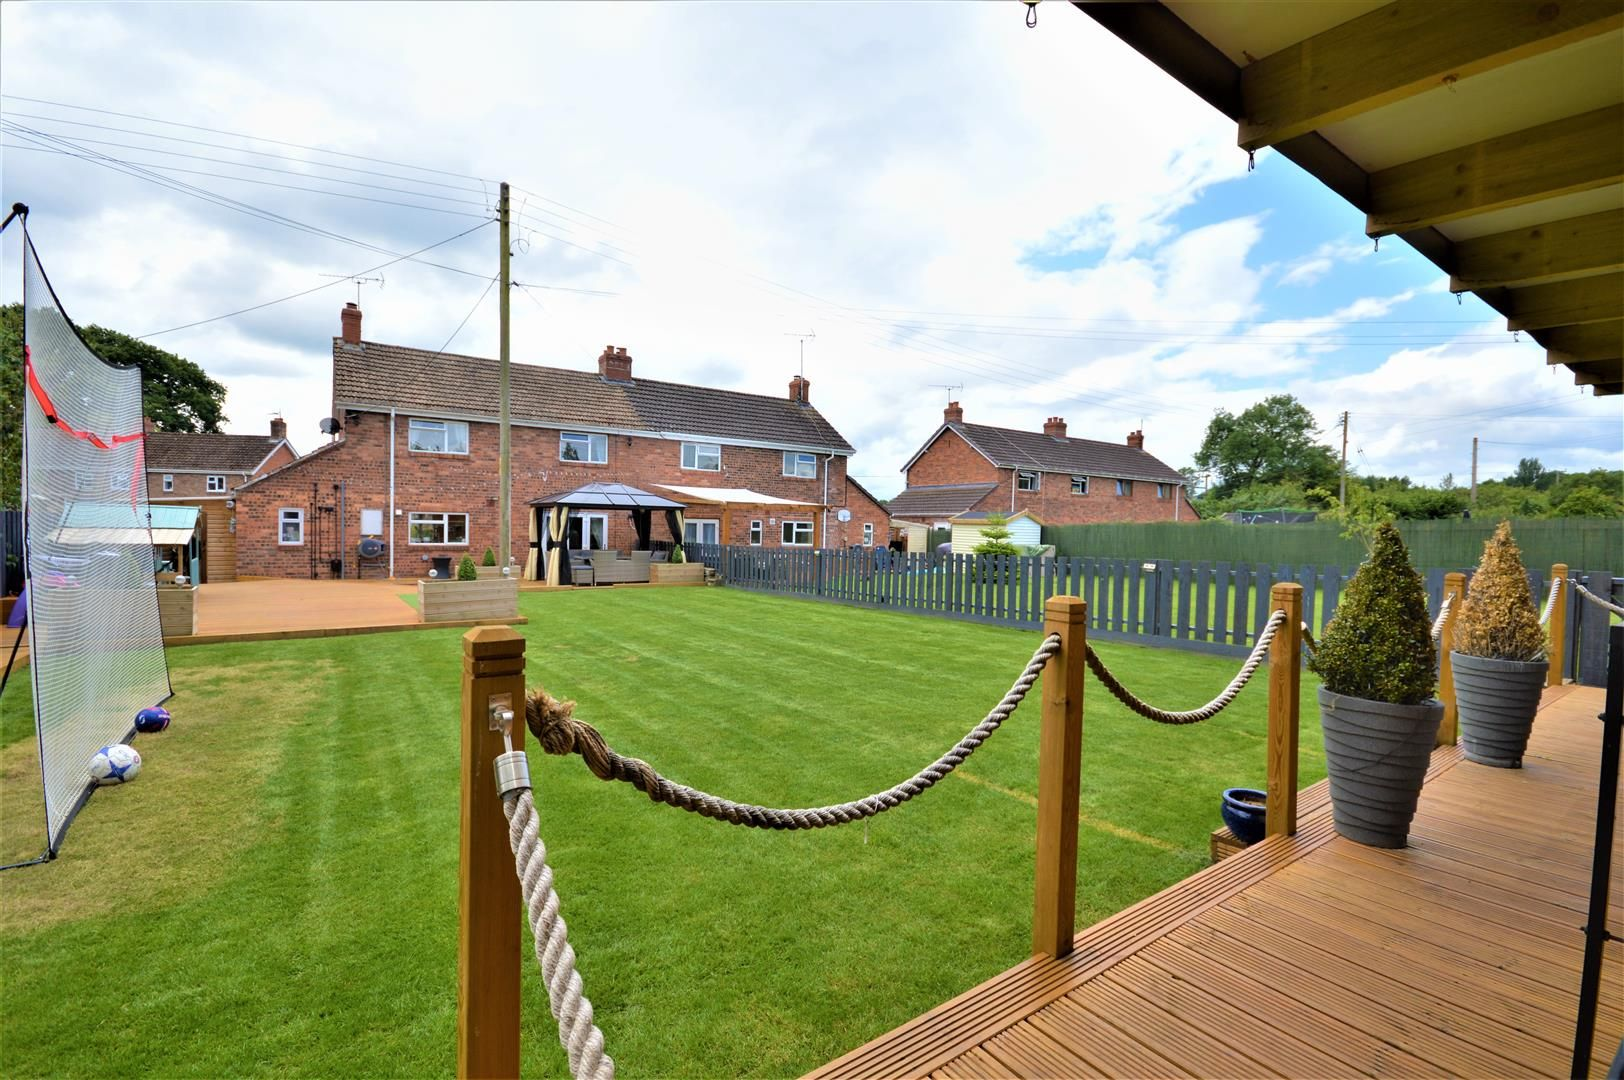 3 bed semi-detached for sale in Eardisley  - Property Image 1